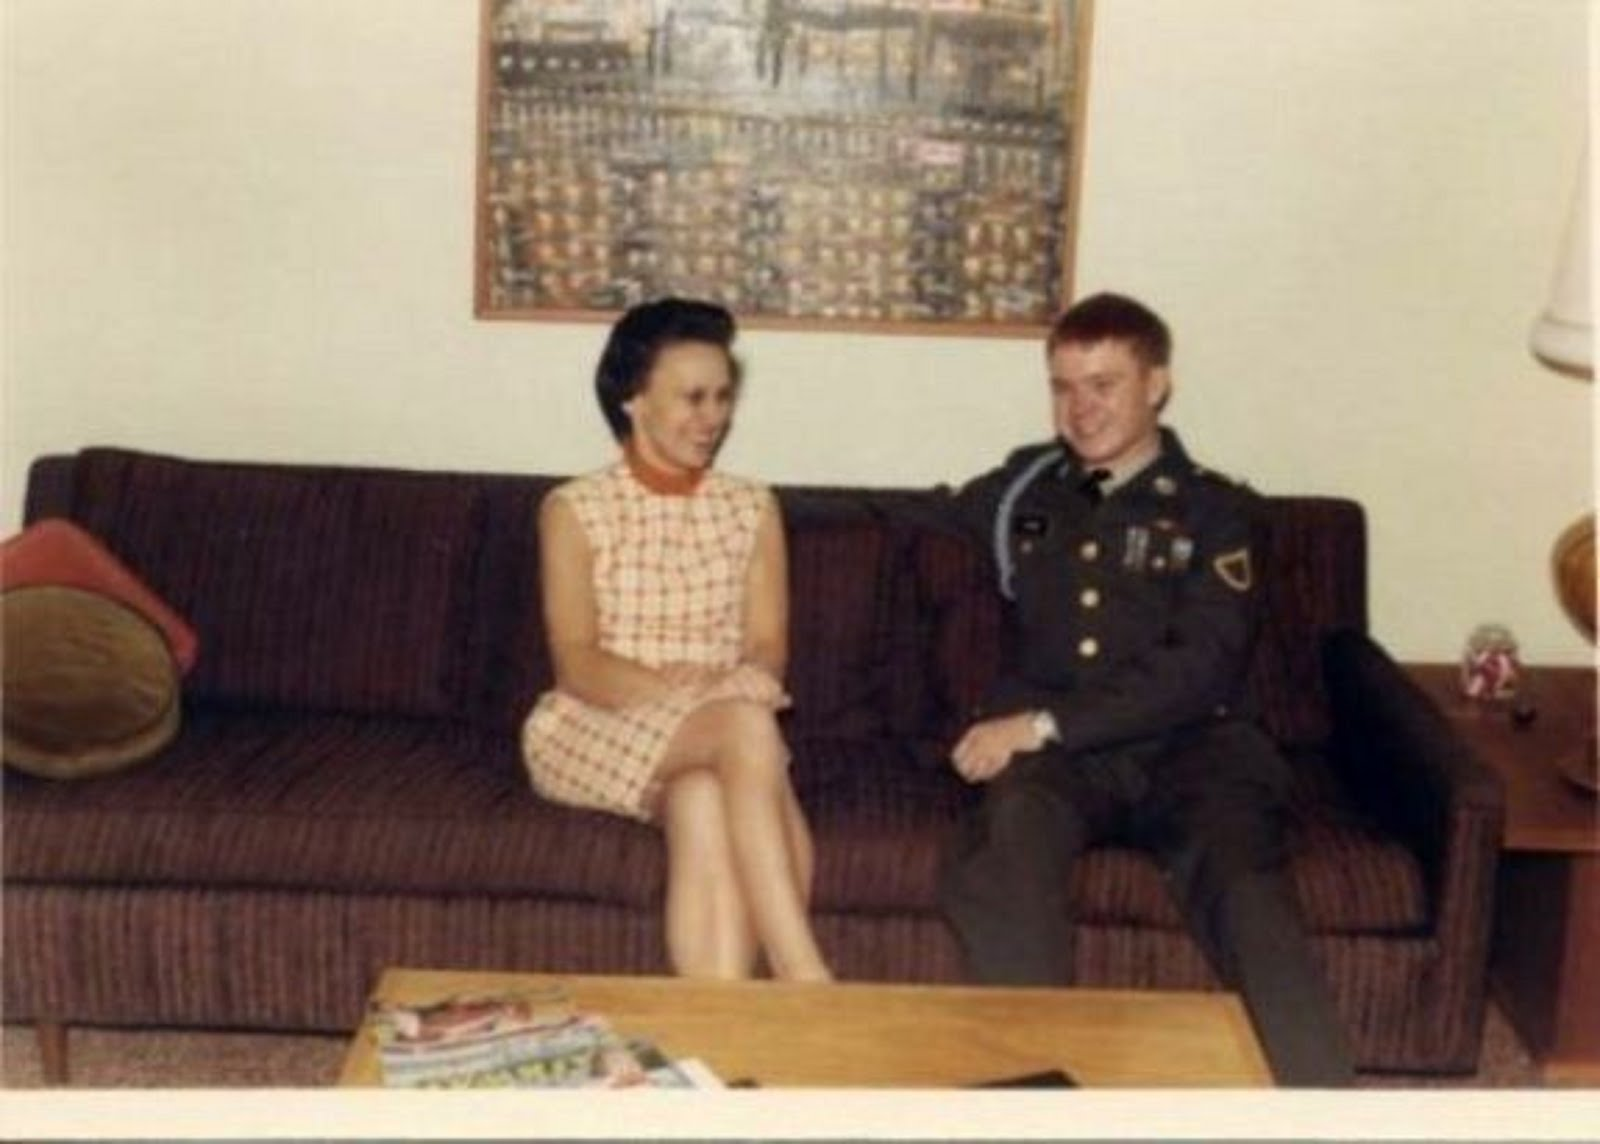 MY MOM IRENE, WITH ME IN UNIFORM ON THE NIGHT I  WAS LEAVING TO VIETNAM  ON JAN 19TH,1969